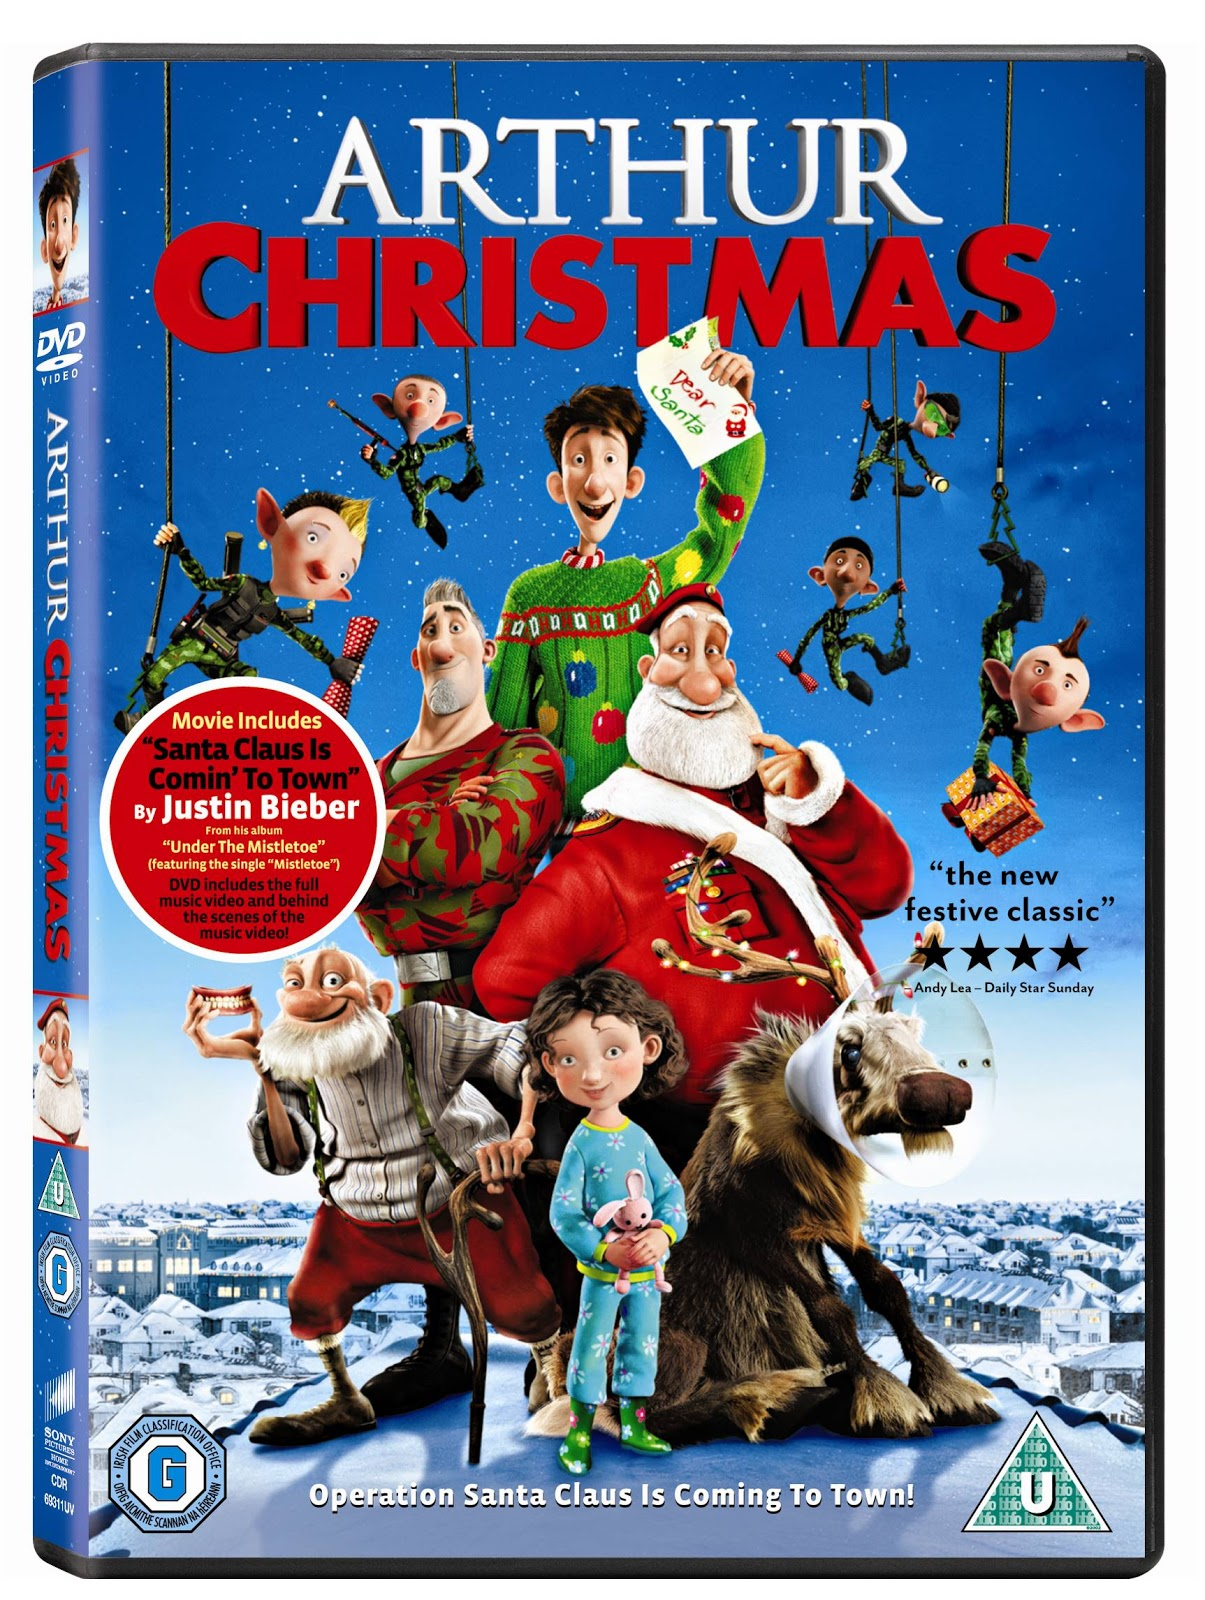 Madhouse Family Reviews Festive Family Viewing